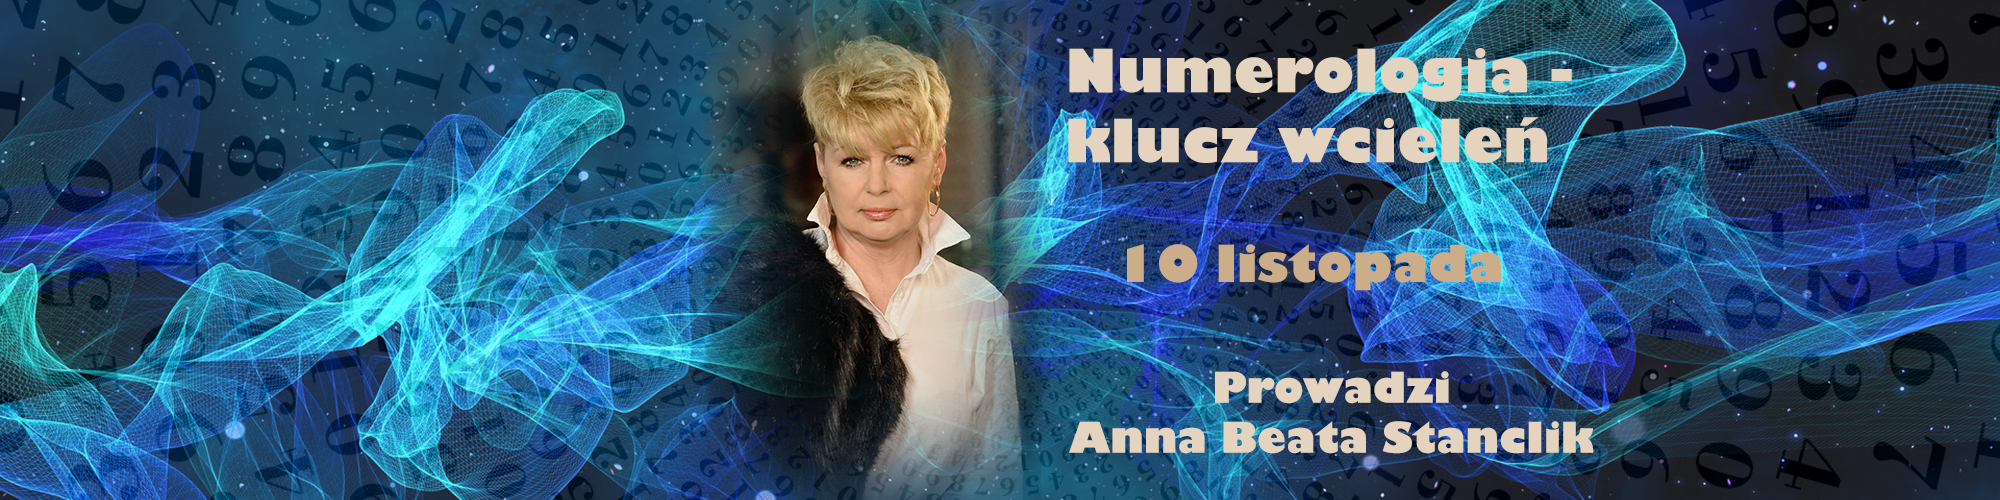 numerologia-banner